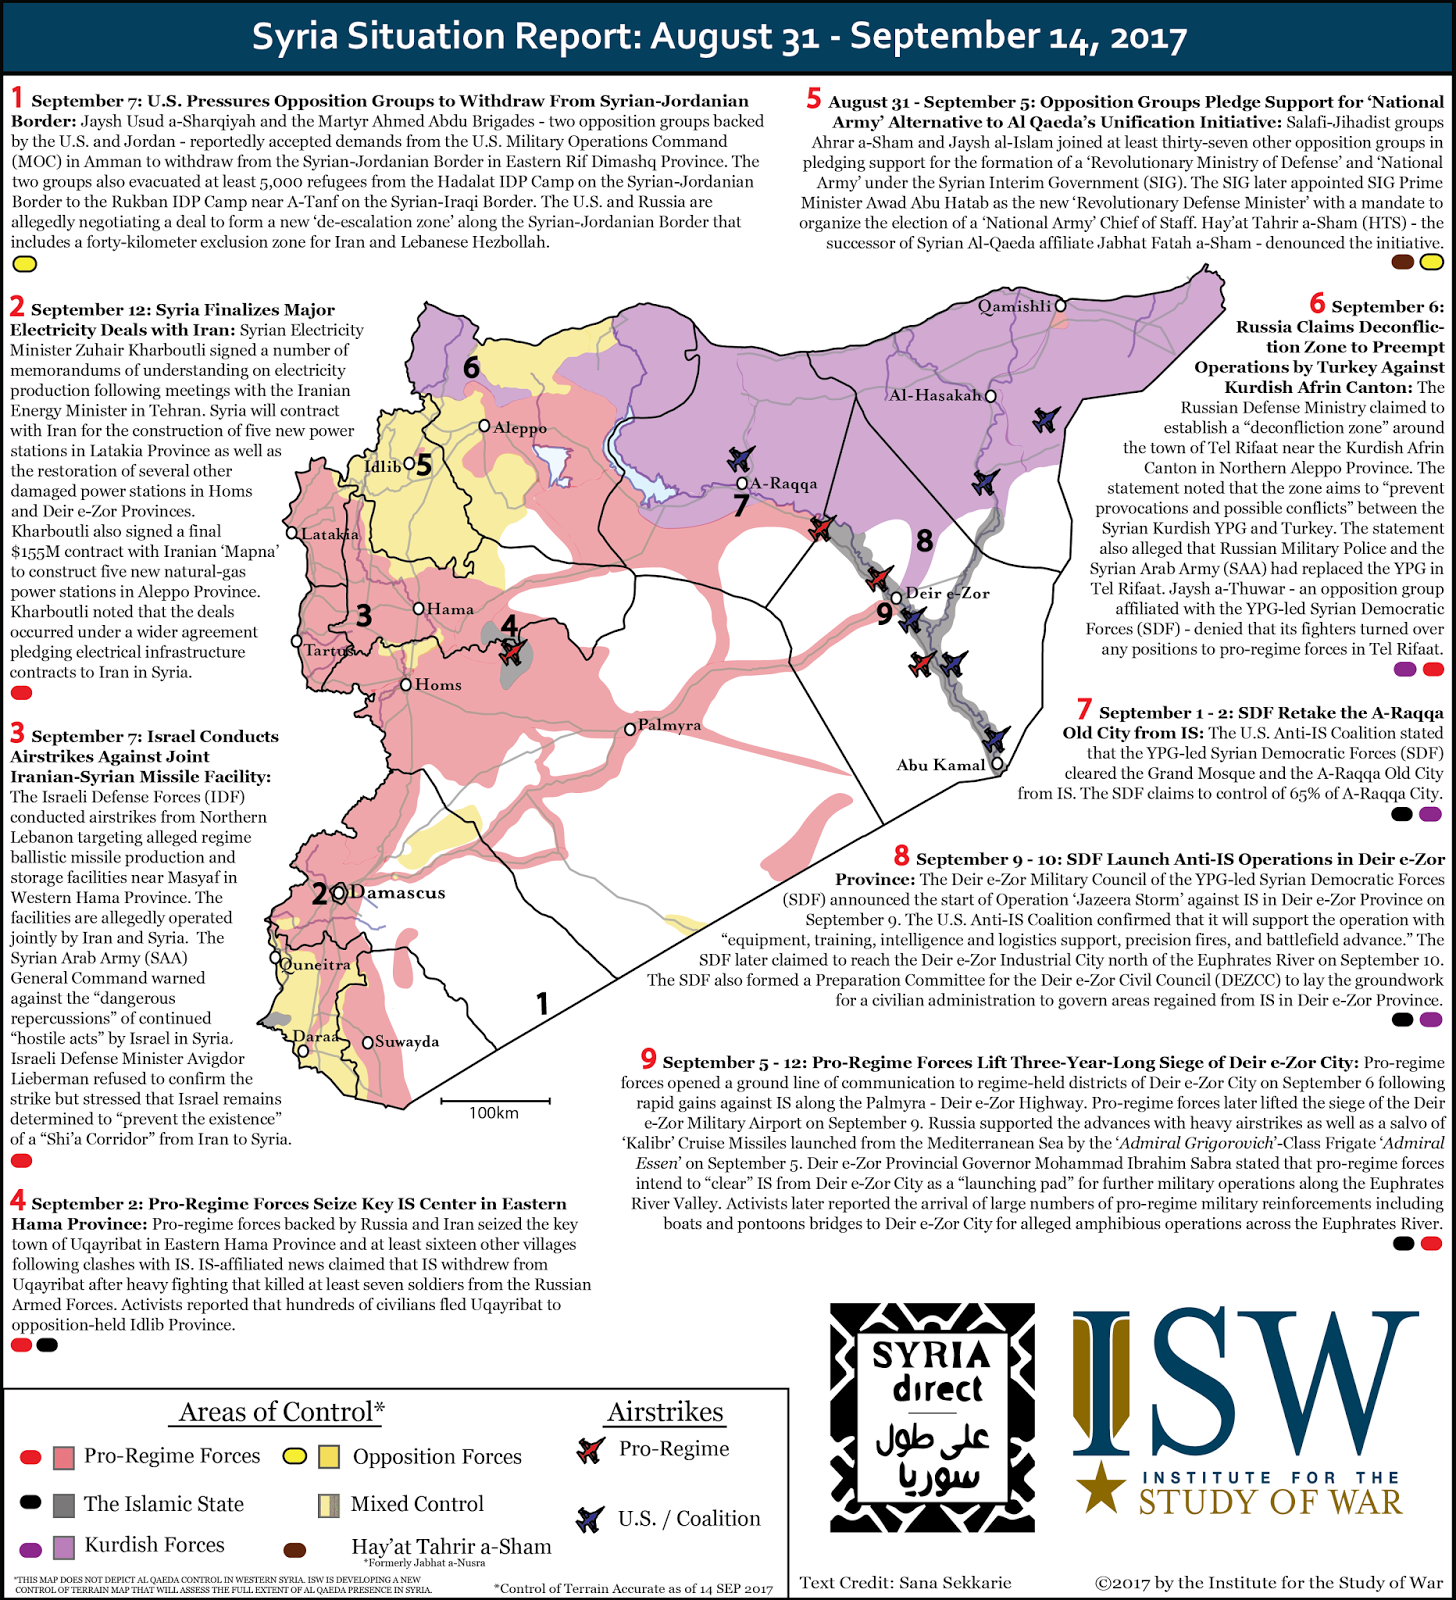 ISW Blog: Syria Situation Report: August 31 - September 14, 2017